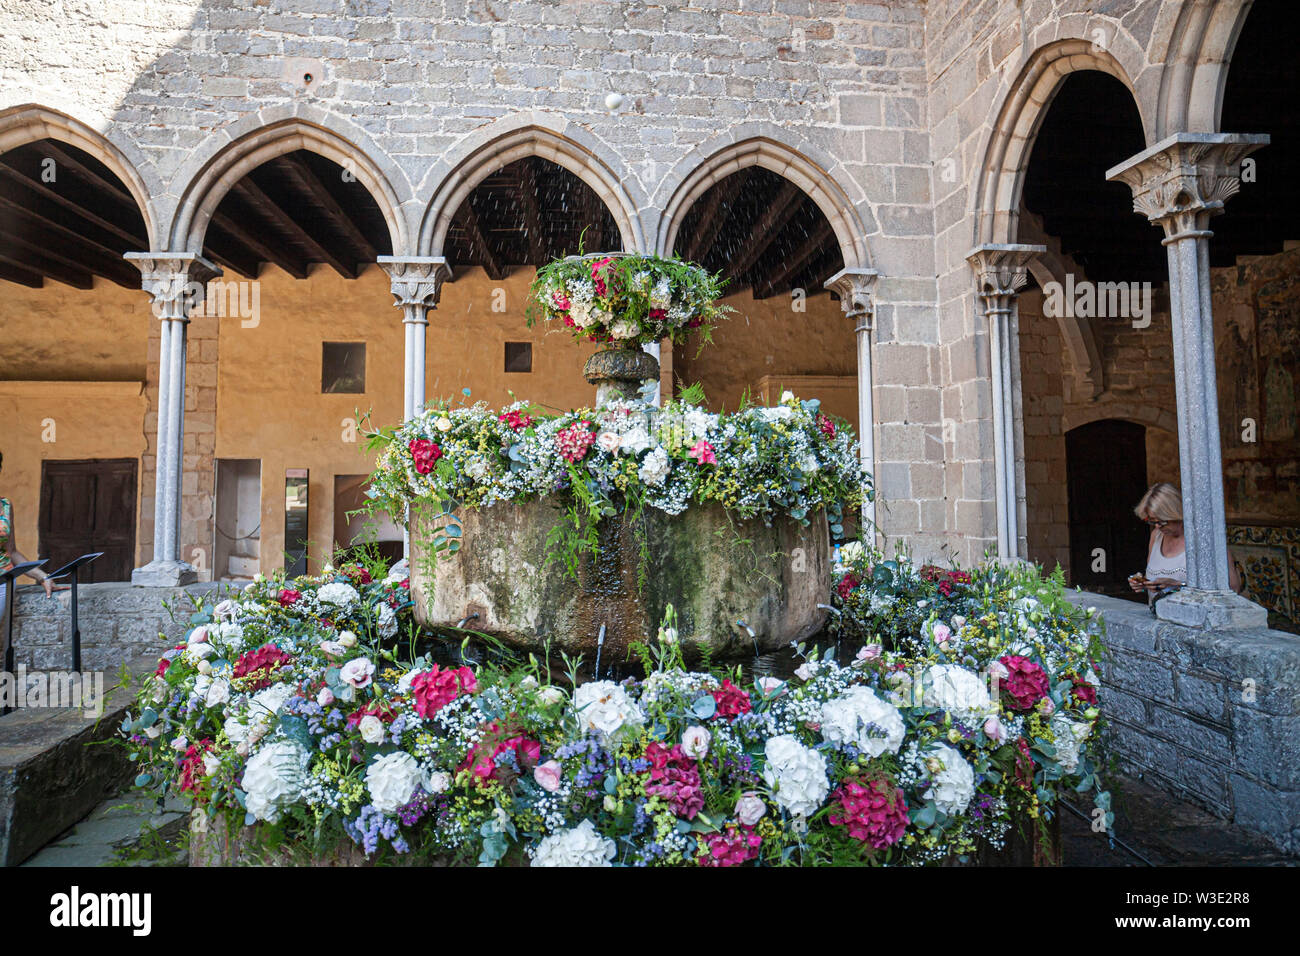 Barcelona, Spain. Cloister of Monastery of Pedralbes. Ou com balla in fountain, Corpus day tradition. - Stock Image